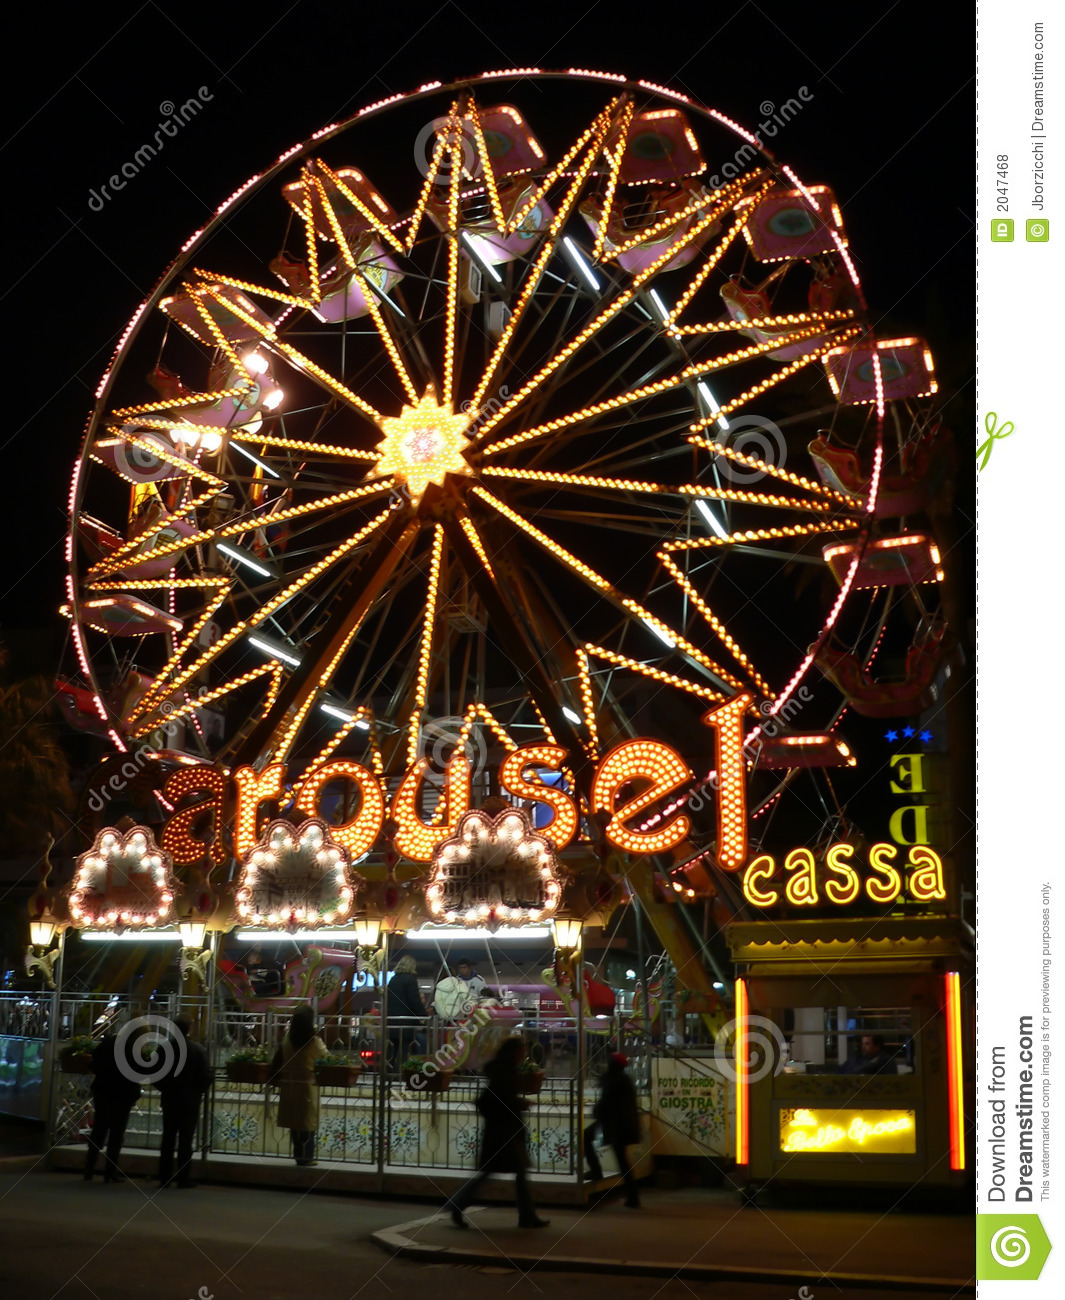 luna park in italy royalty free stock photos image 2047468